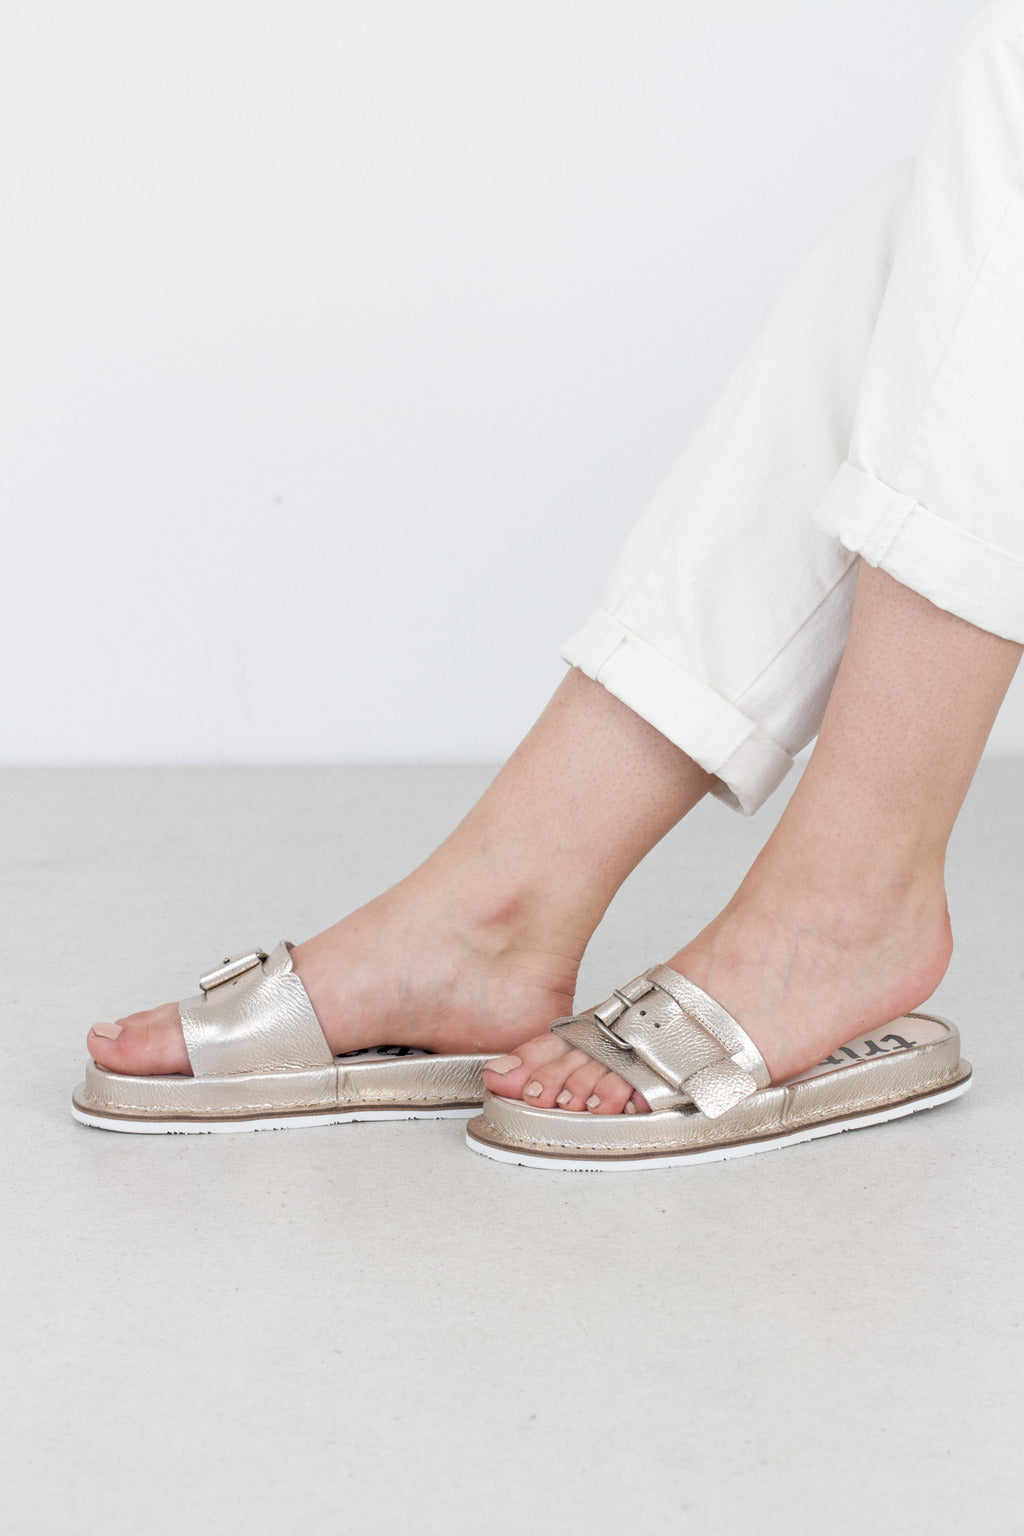 Trippen Rescue Sandal in Metallic Perla